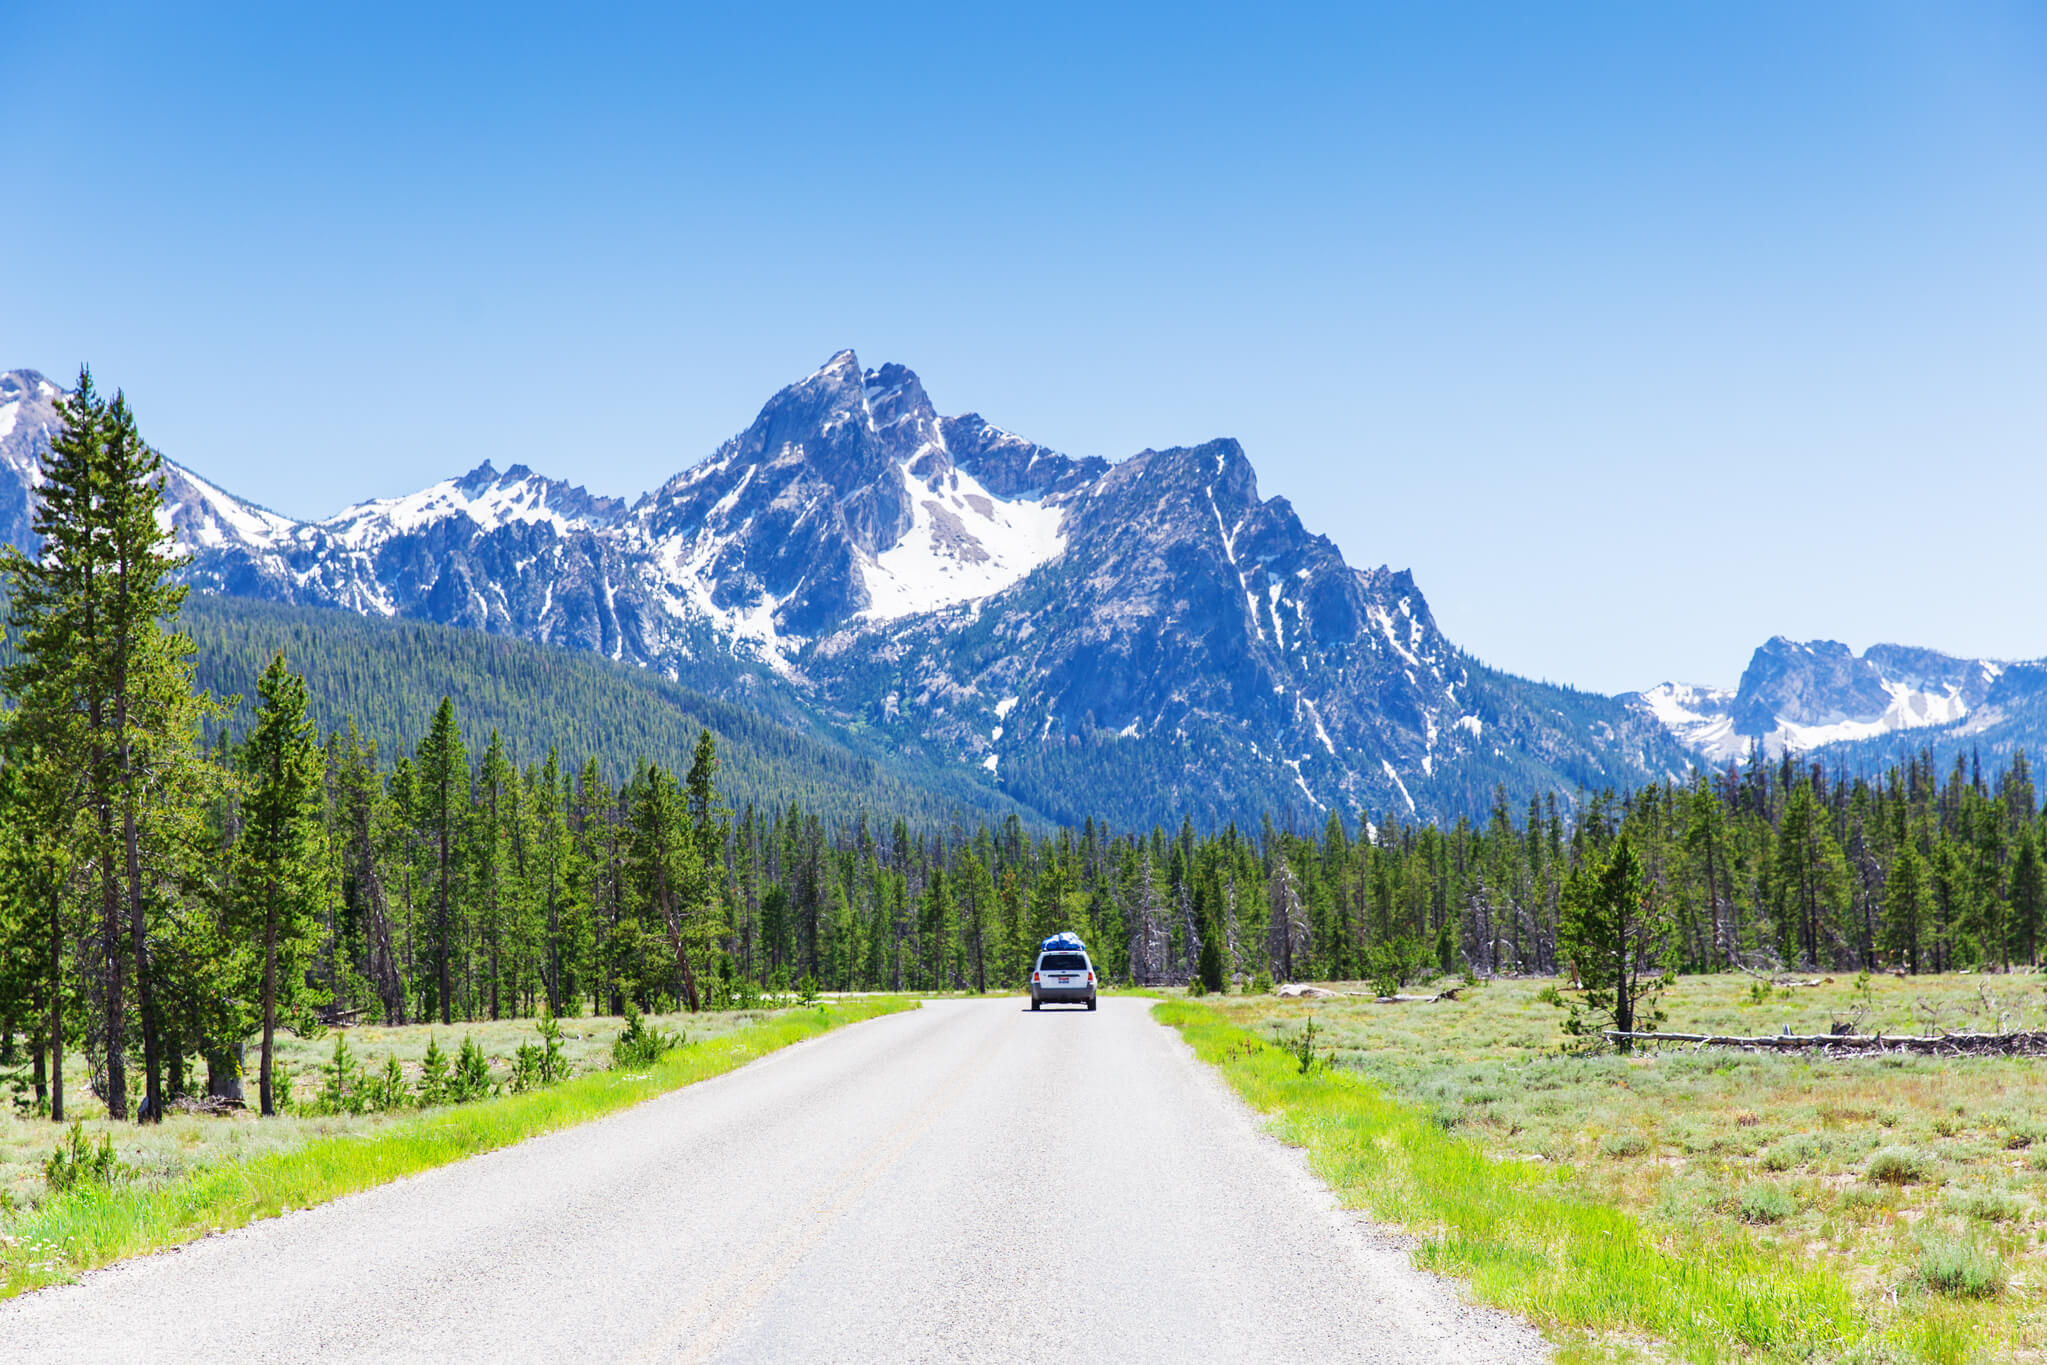 A view of McGown Peak near Stanley. Photo Credit: Idaho Tourism